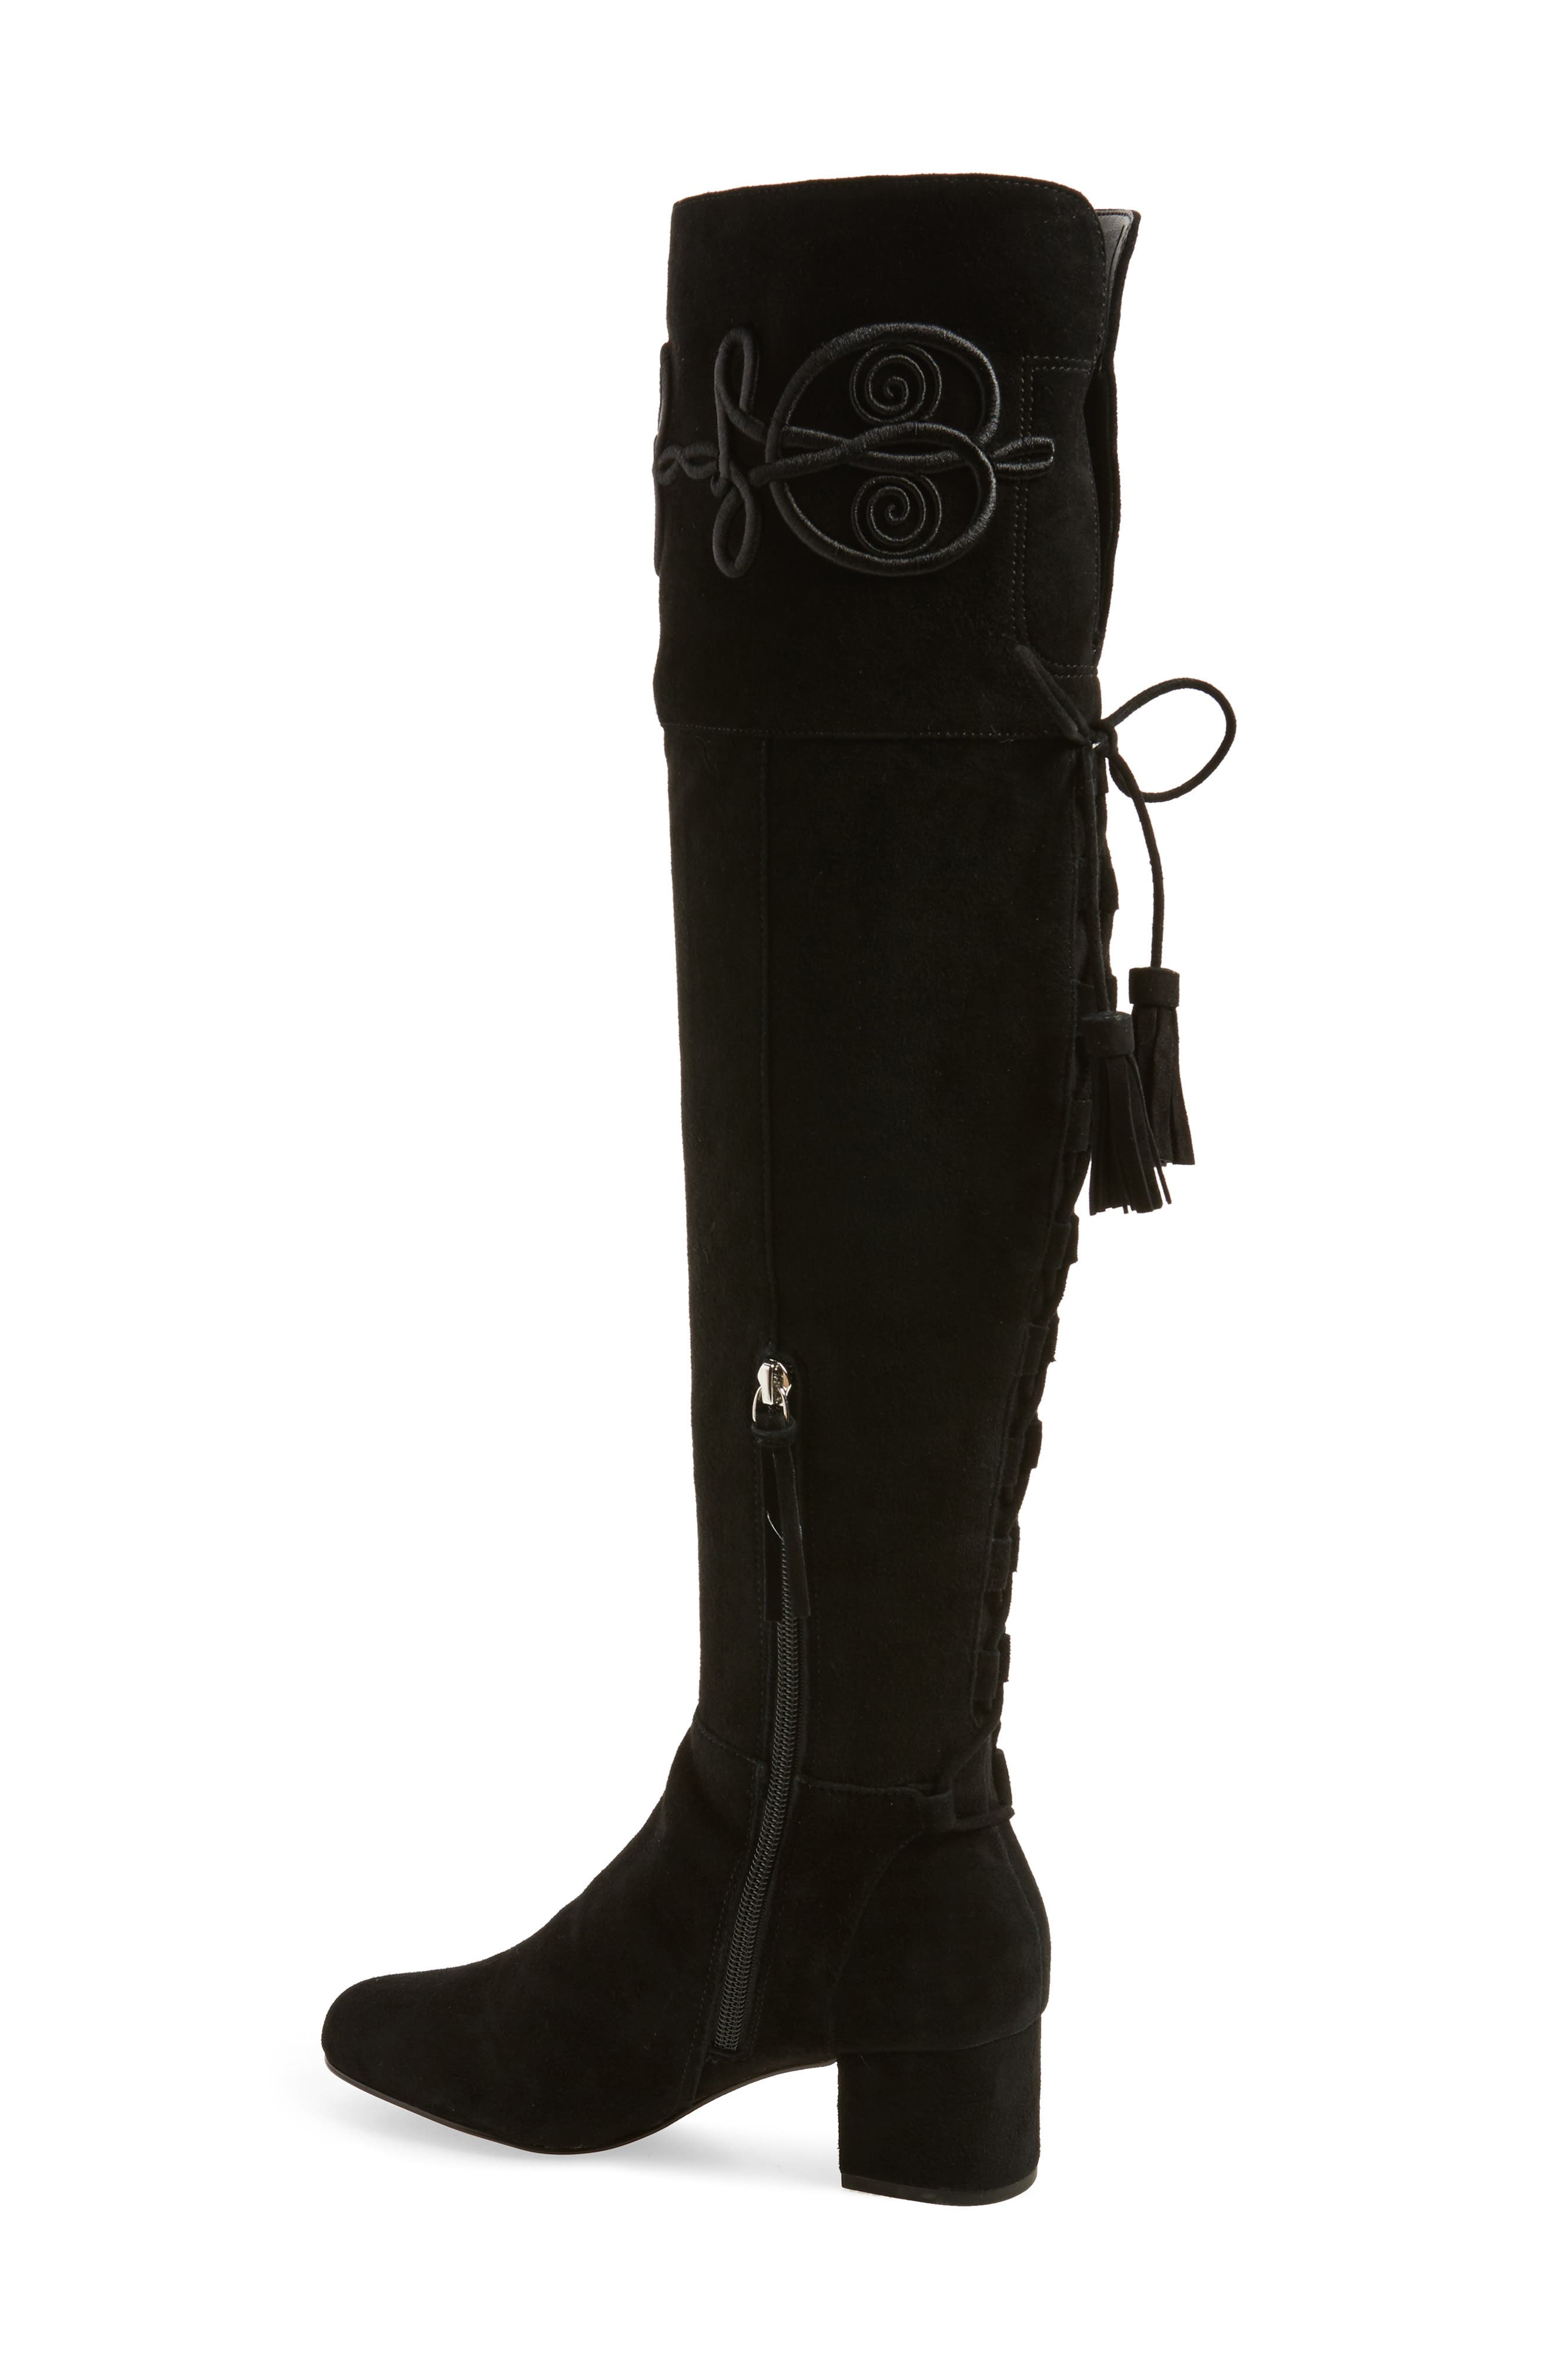 Shiloh Over the Knee Boot,                             Alternate thumbnail 2, color,                             004